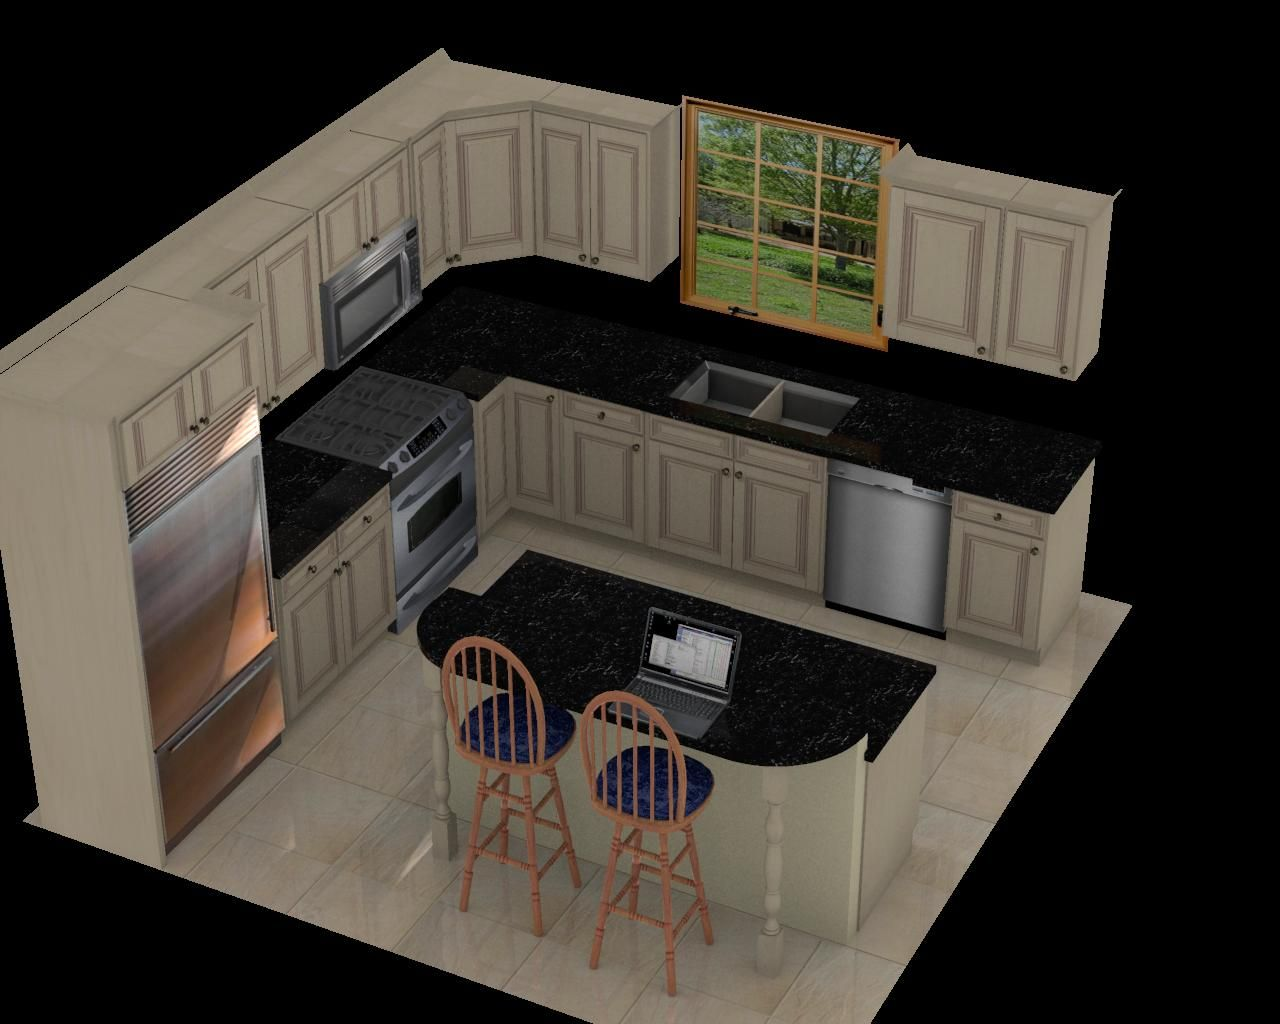 kitchen design layout ideas buy old cabinets luxury 12x12 with island 51 for